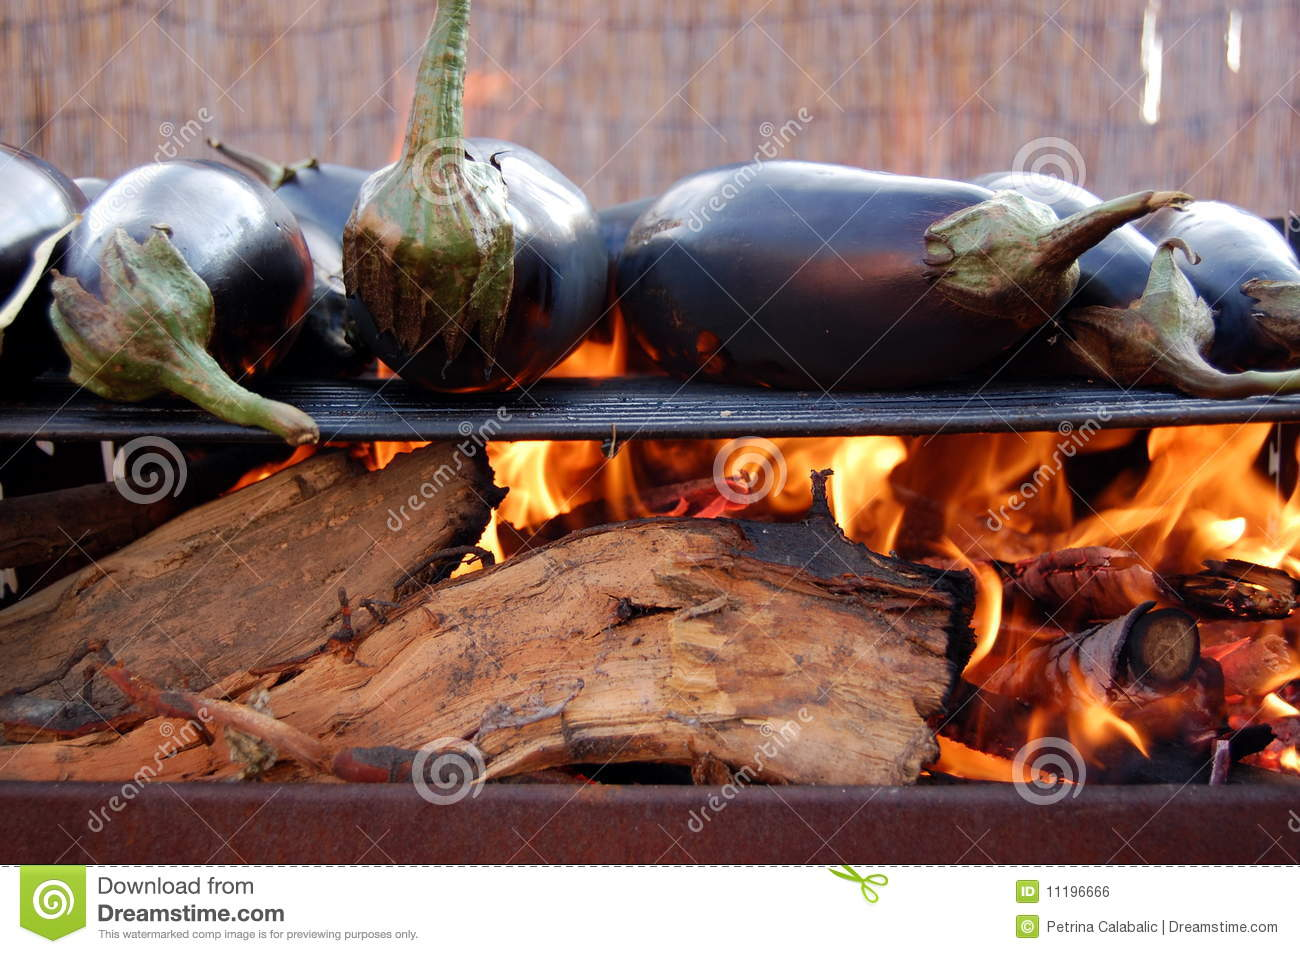 Aubergines on grill